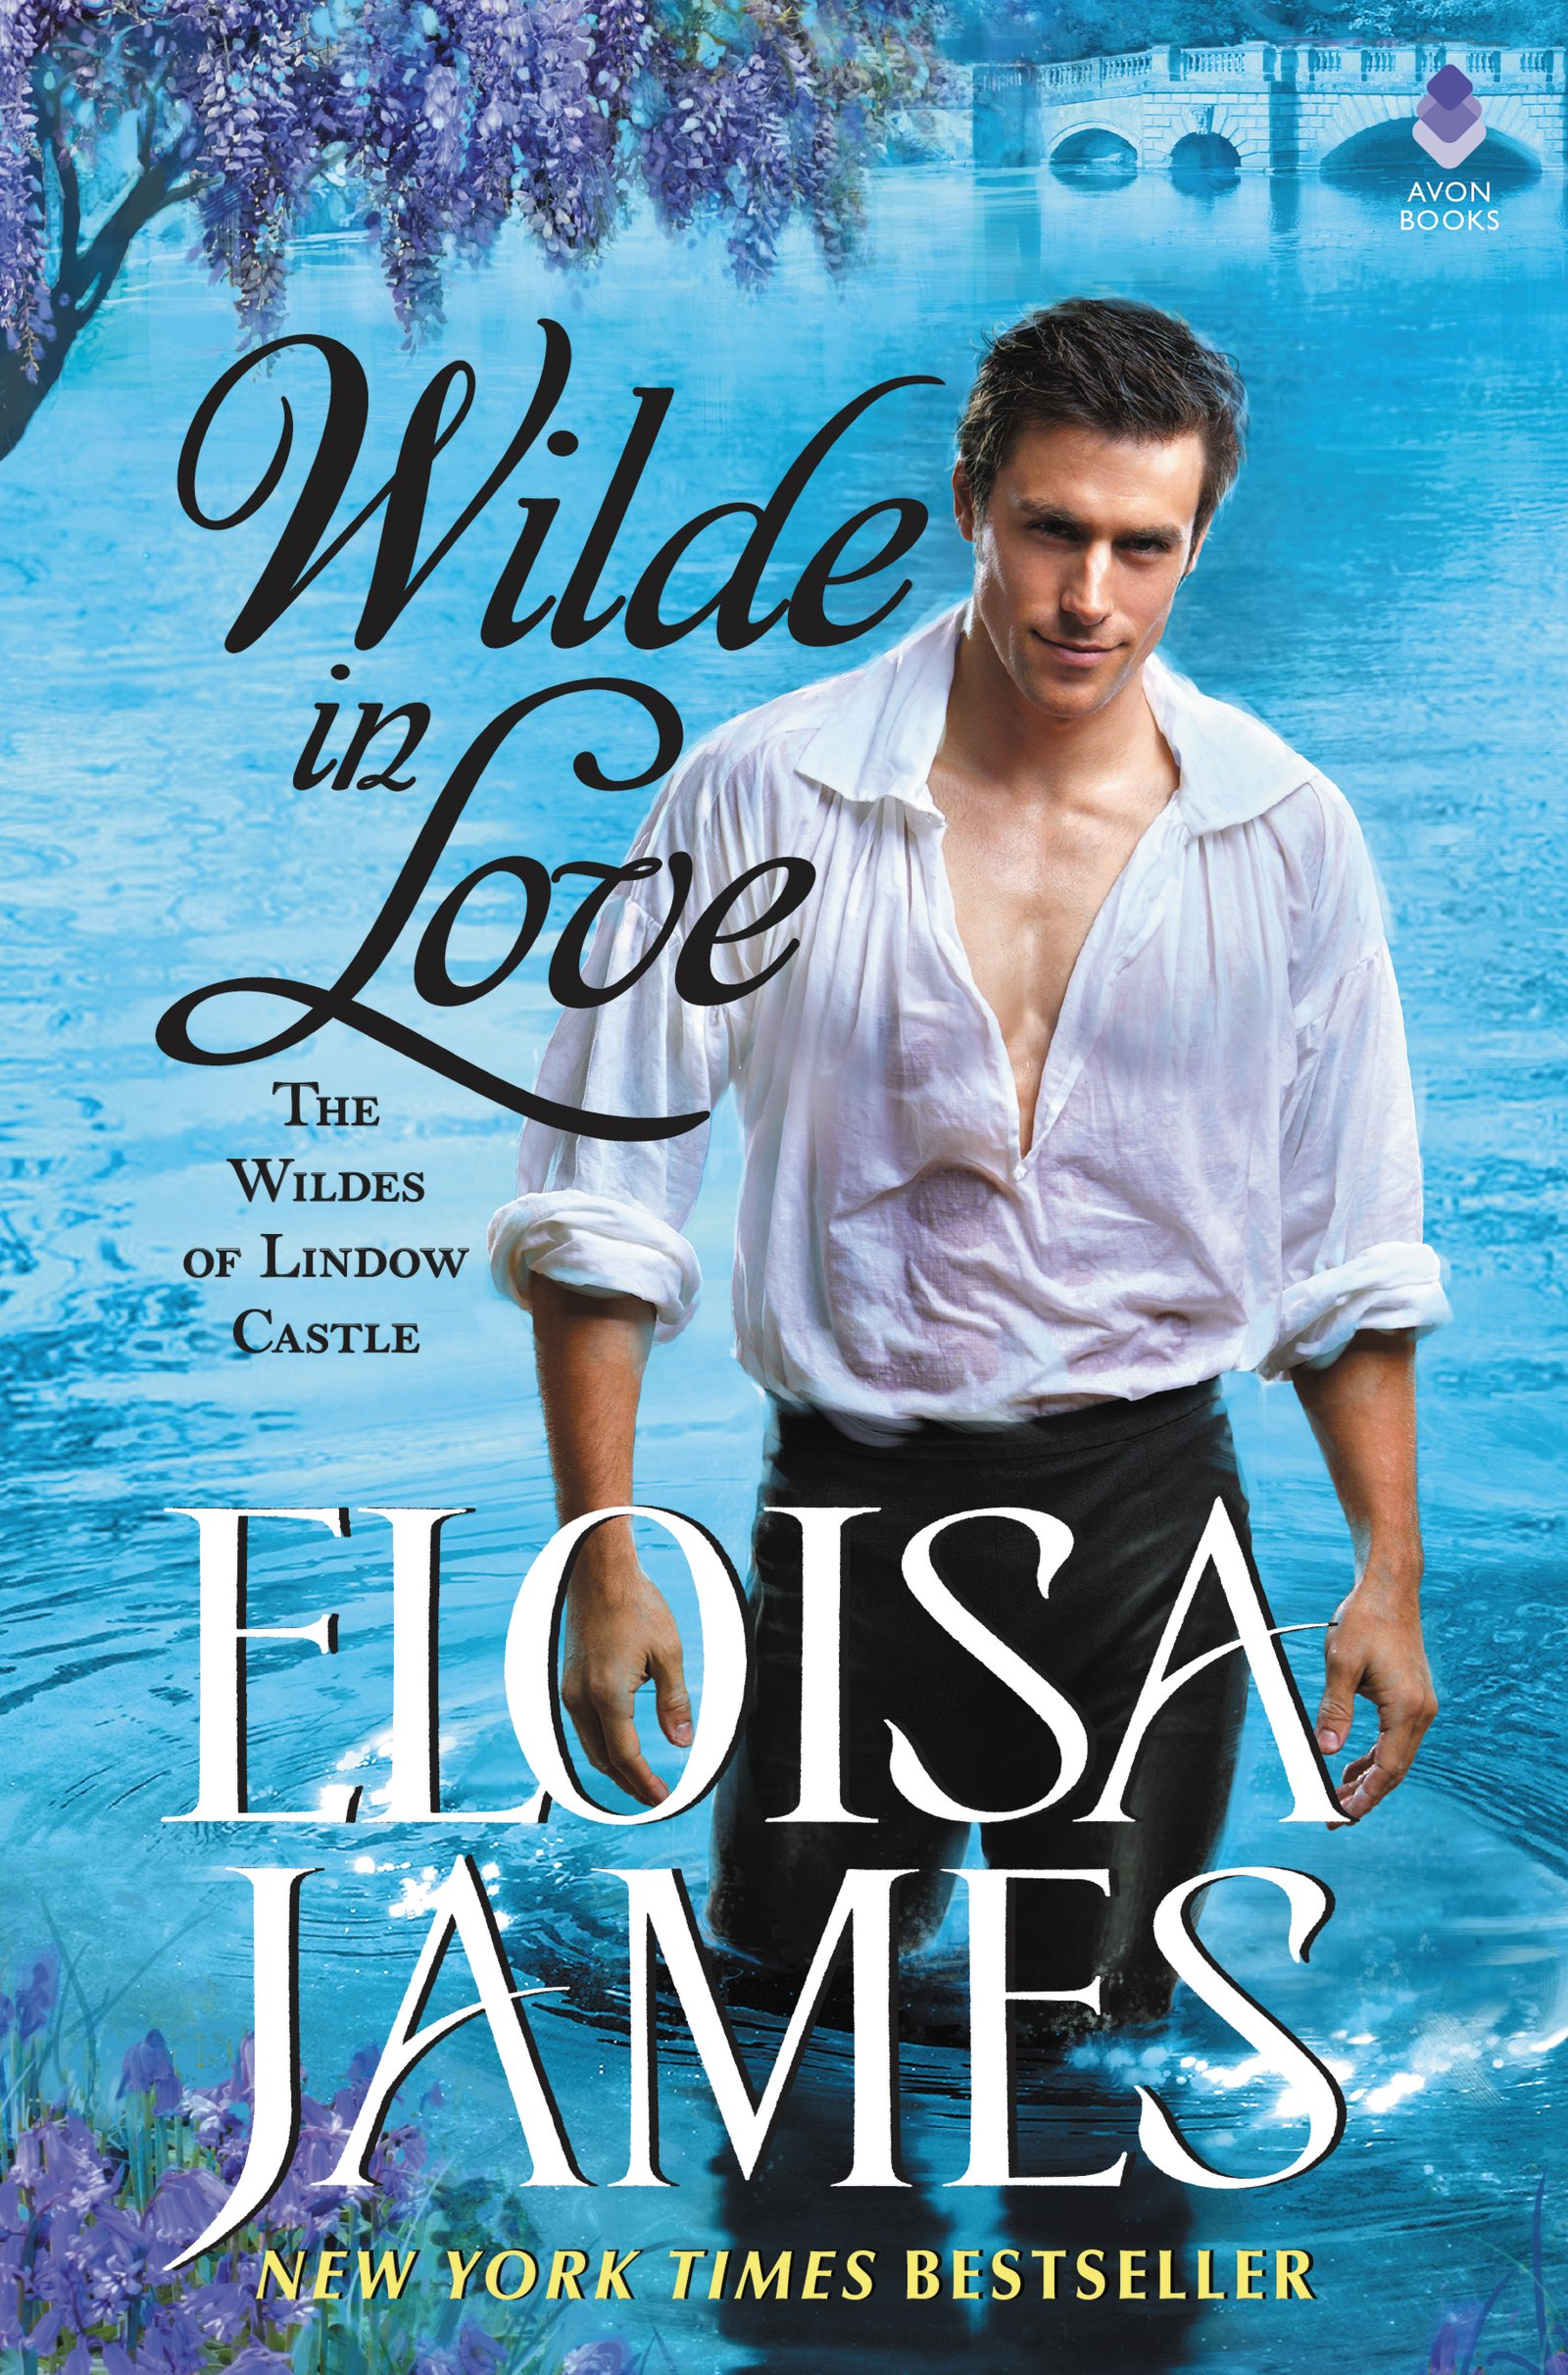 Eloisa James book cover